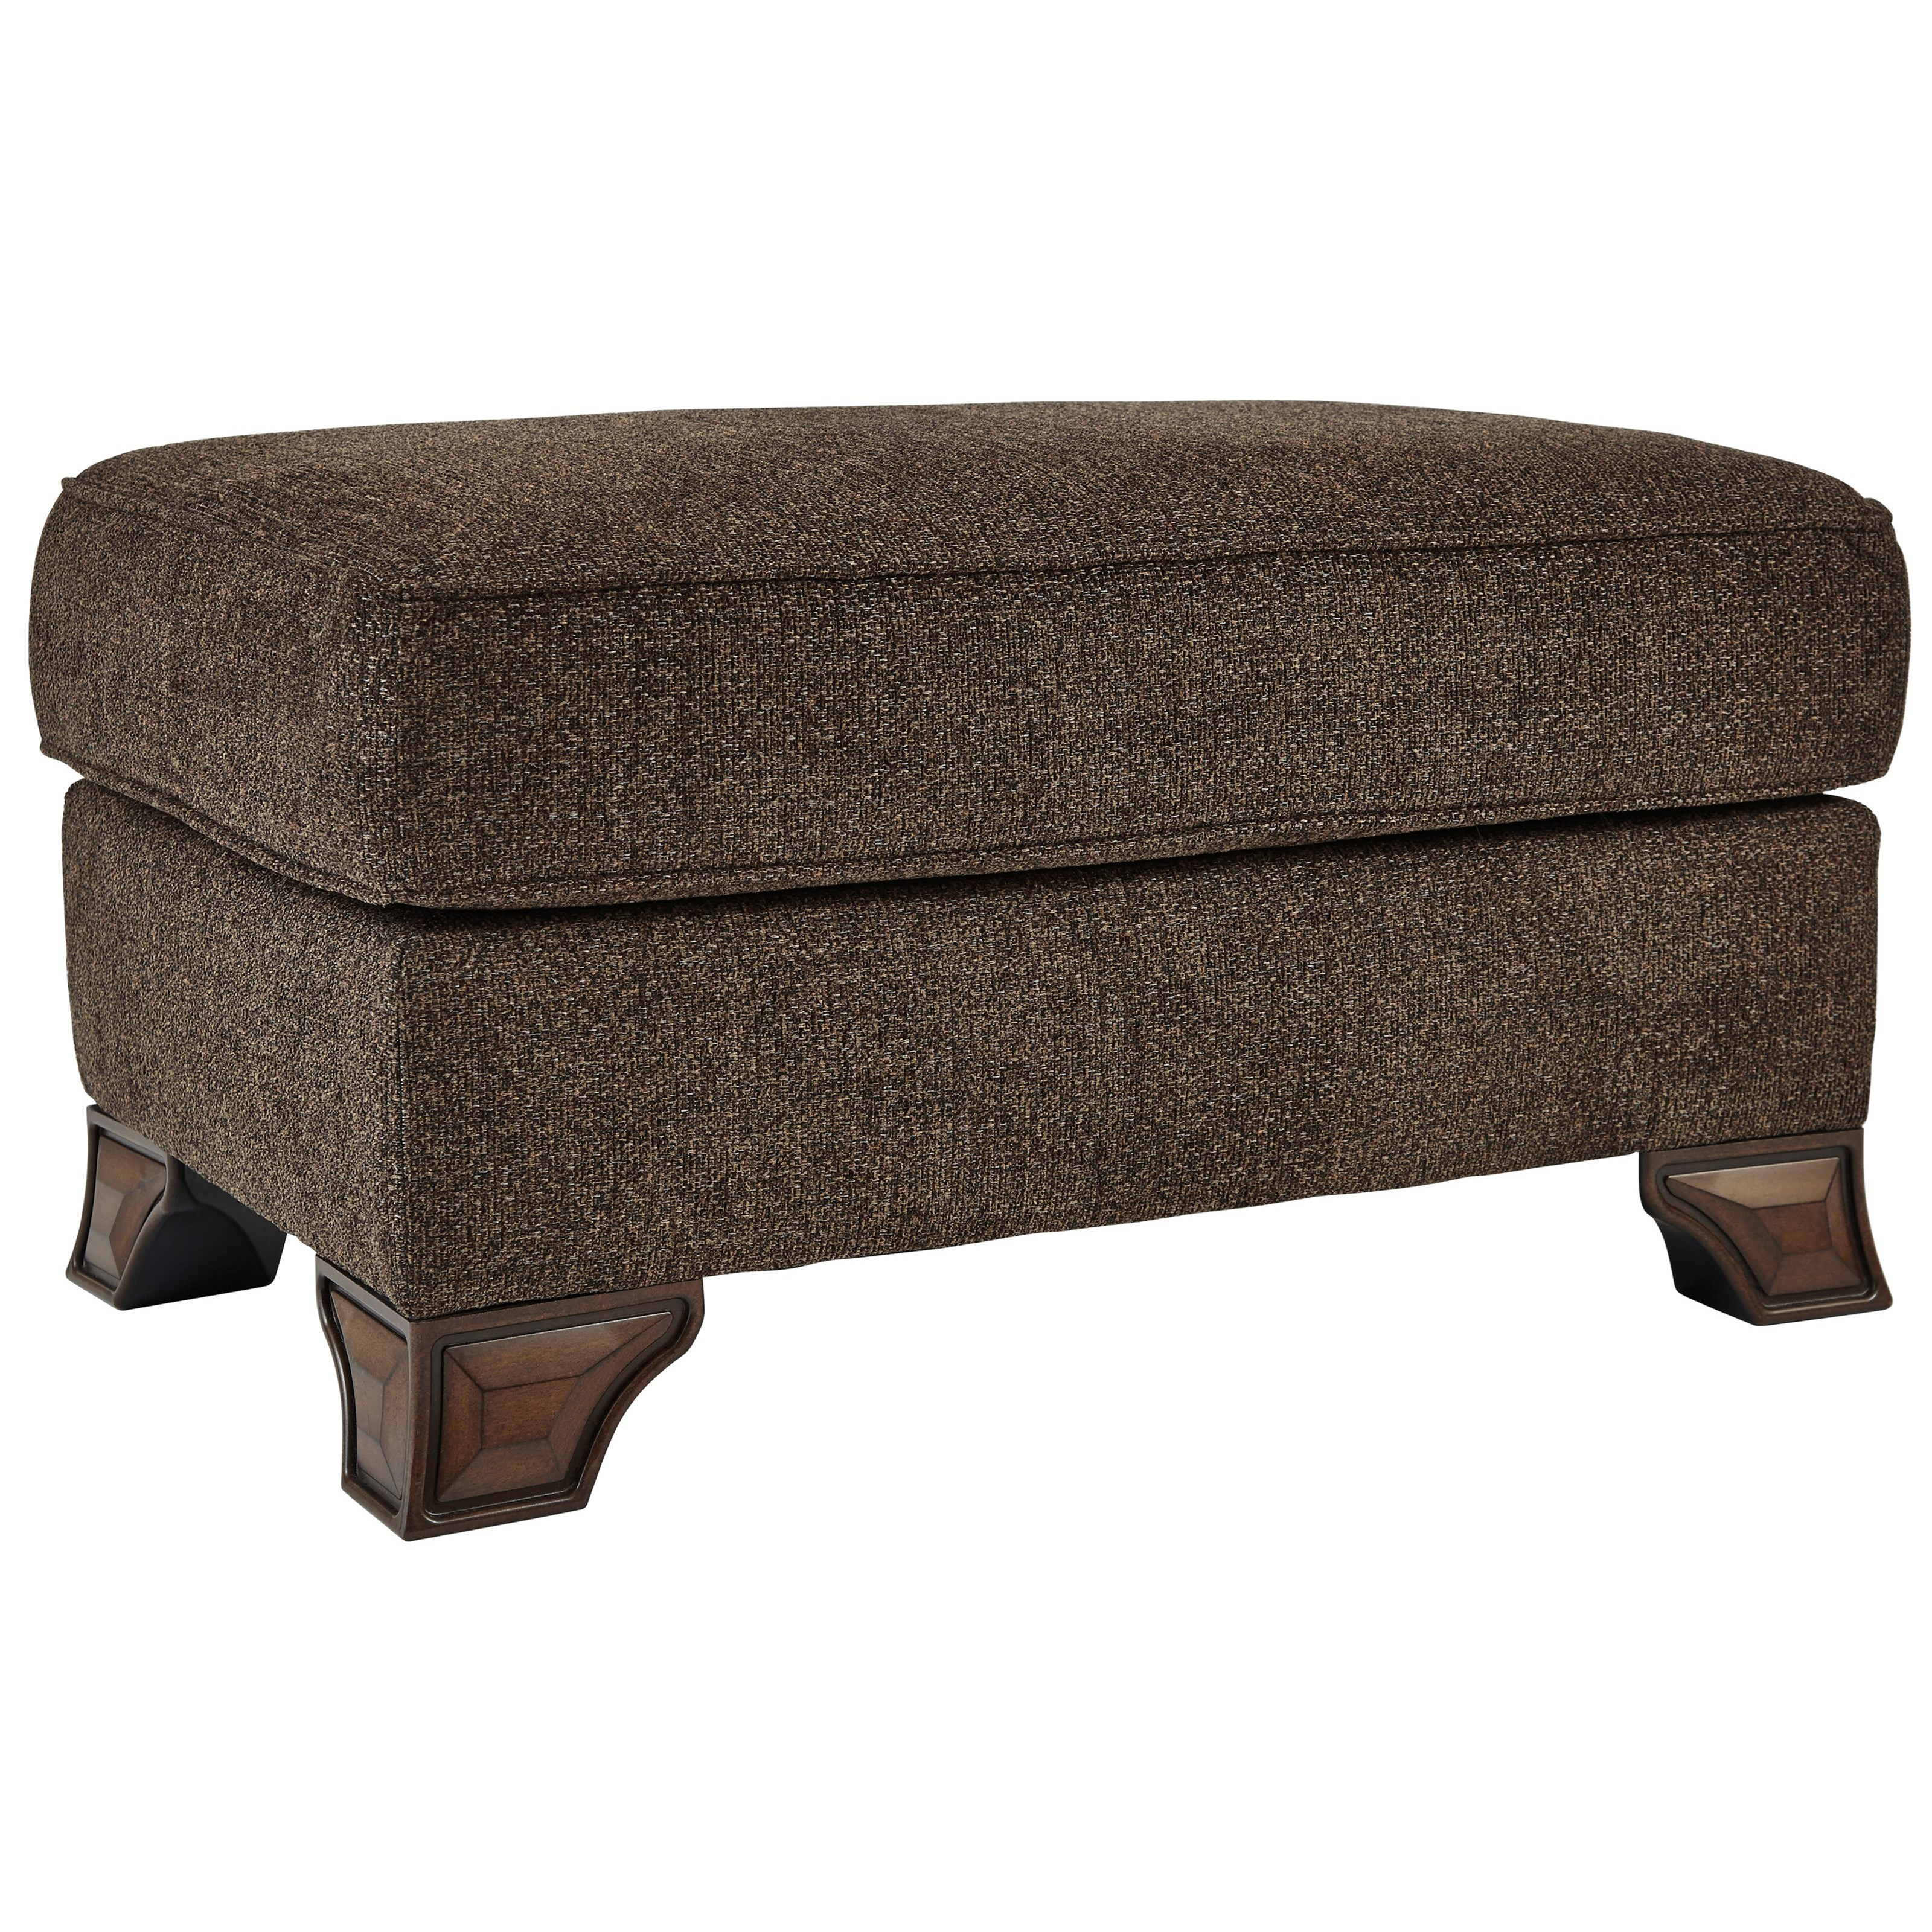 Miltonwood Ottoman by Benchcraft at Walker's Furniture